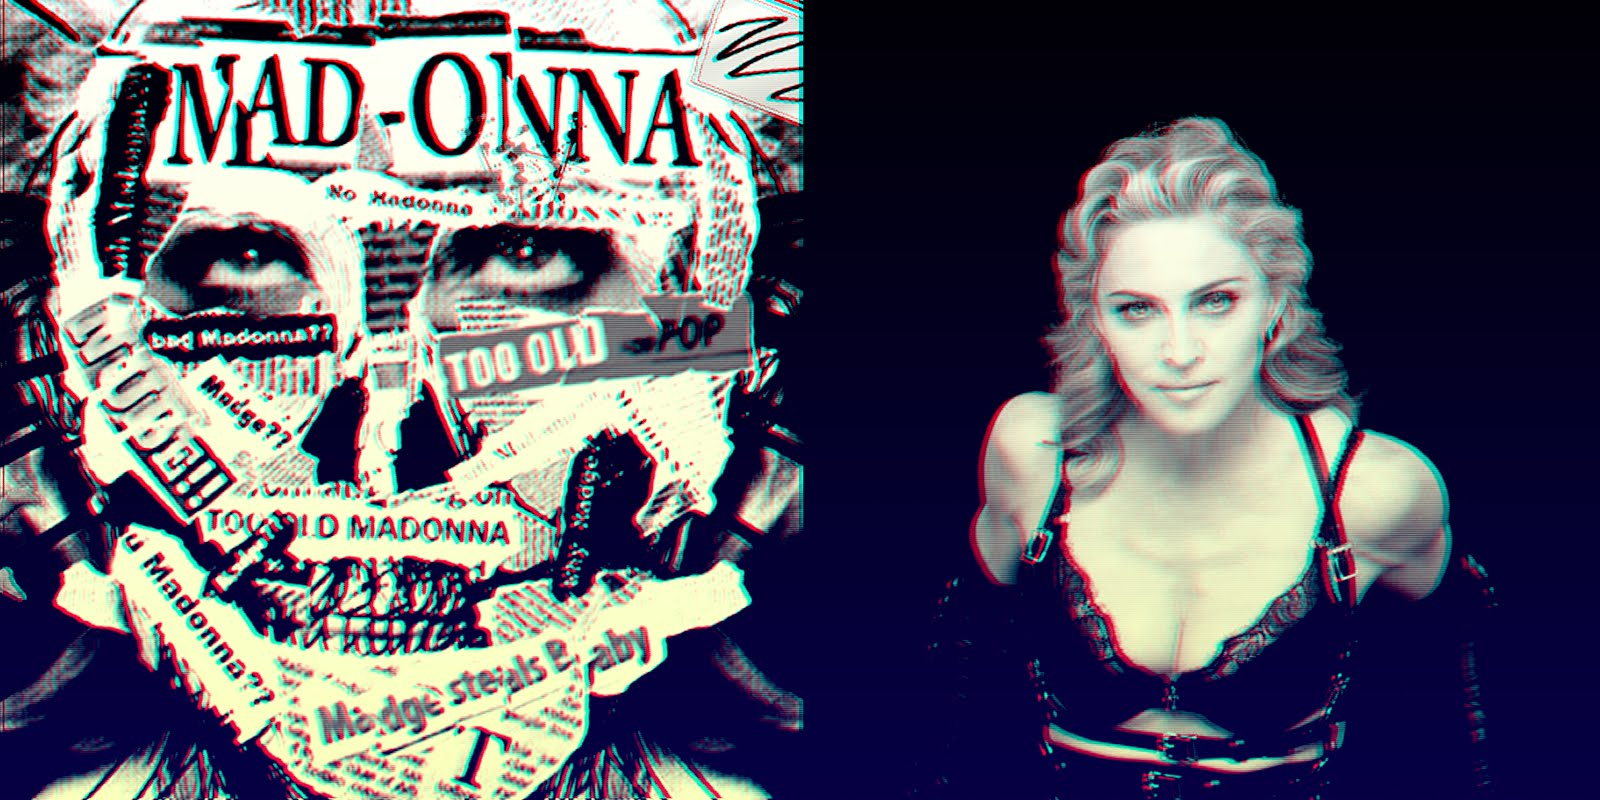 MDNA Tour Digicpack (14)